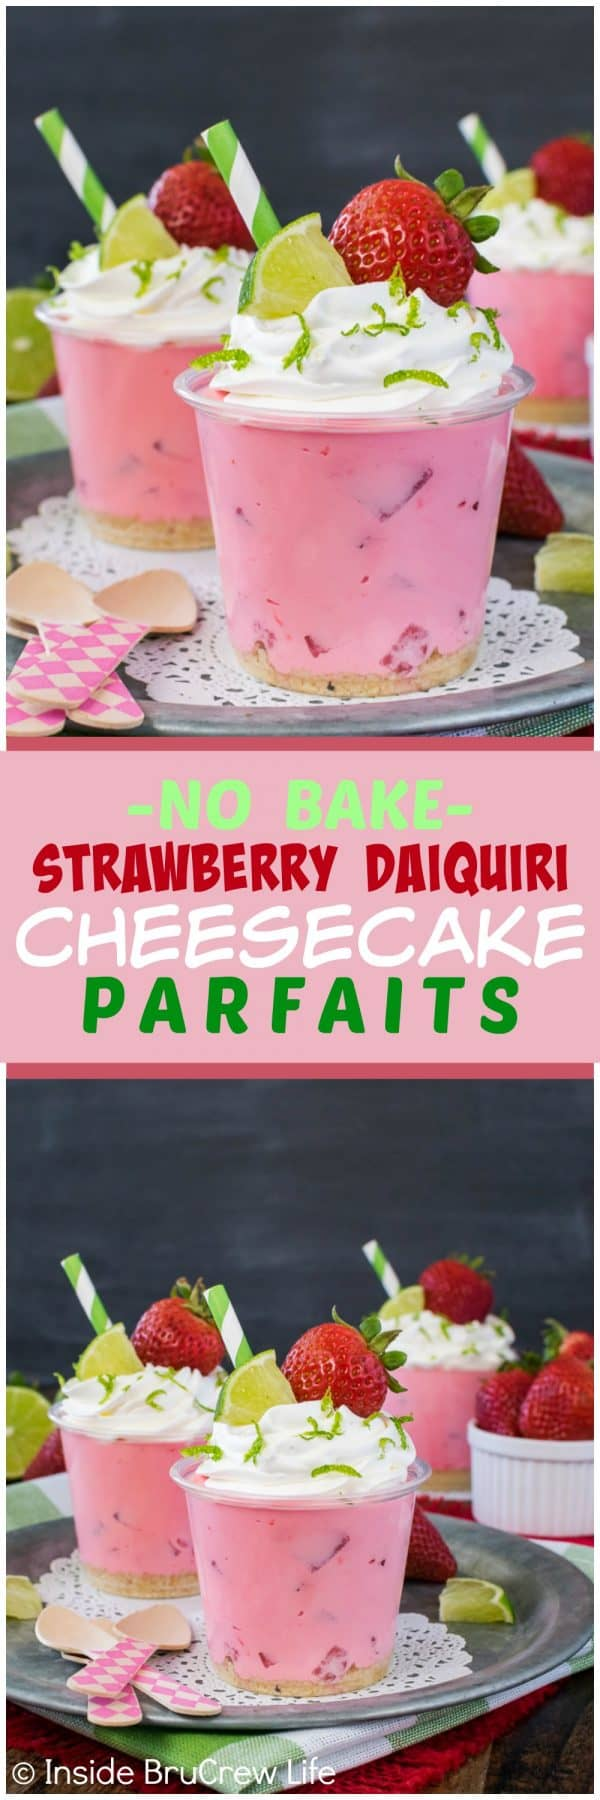 No Bake Strawberry Daiquiri Cheesecake Parfaits - layers of pink no bake cheesecake and cookie crumbs make these little strawberry cups the perfect dessert to try on a hot day. Make this easy recipe for spring and summer parties or picnics. #nobake #strawberry #kidfriendly #cheesecake #easydessert #cheesecakeparfaits #summerdessert